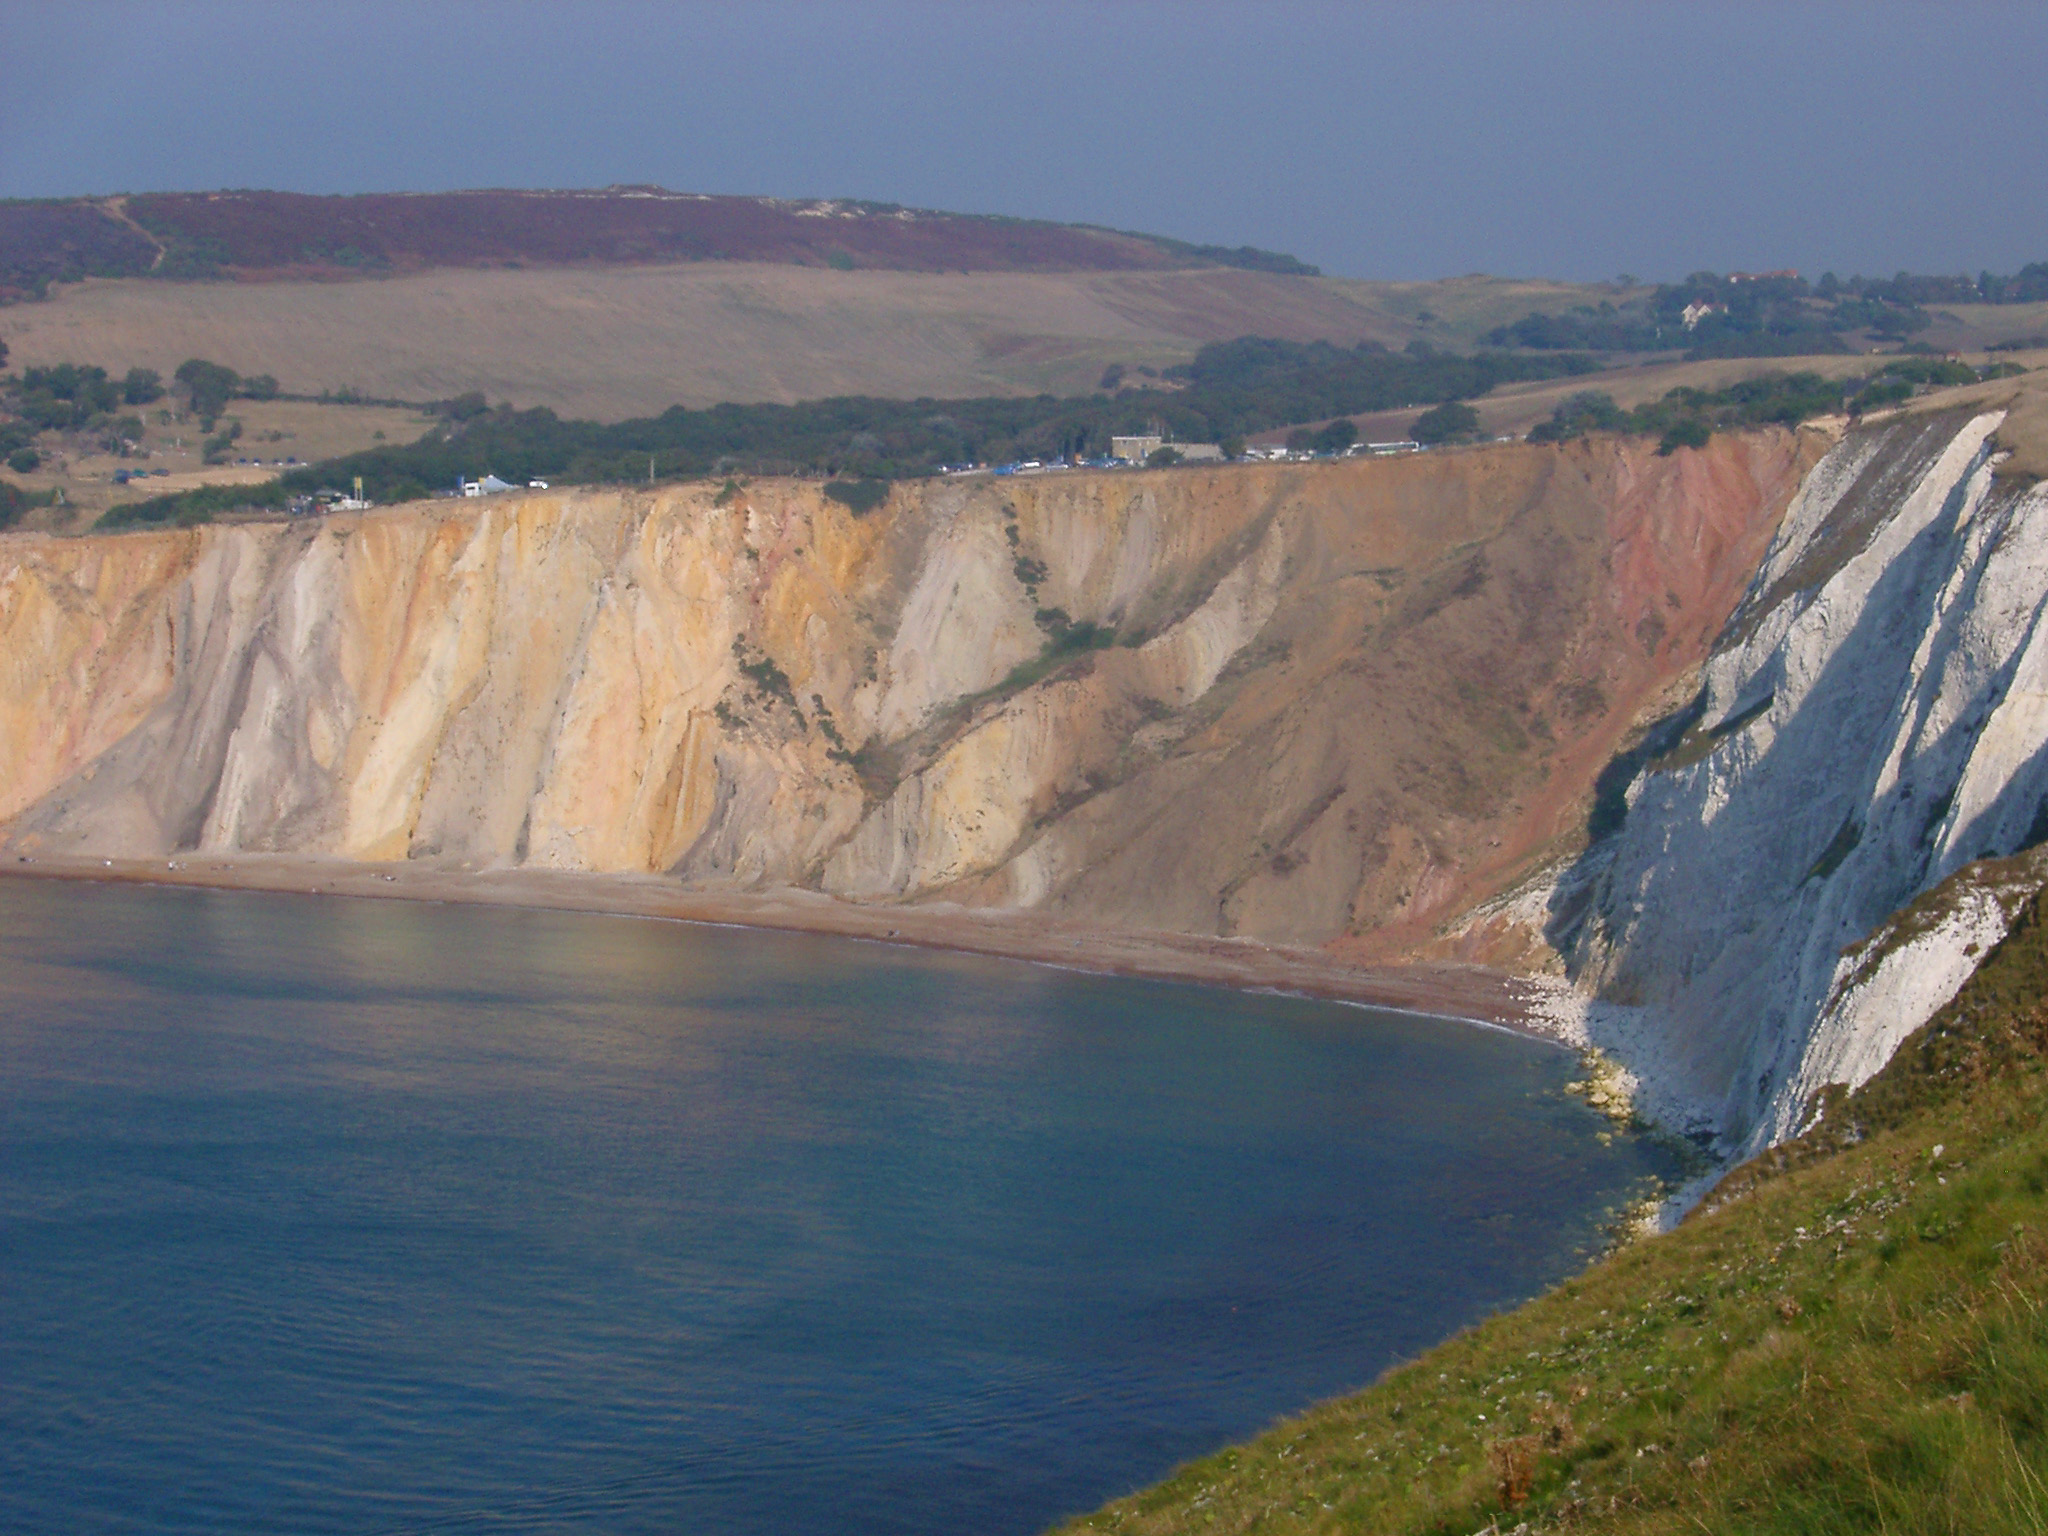 View along the scenic coastline of the Alum Bay cliffs, Isle of Wight showing erosion of color of the chalk with a calm ocean below